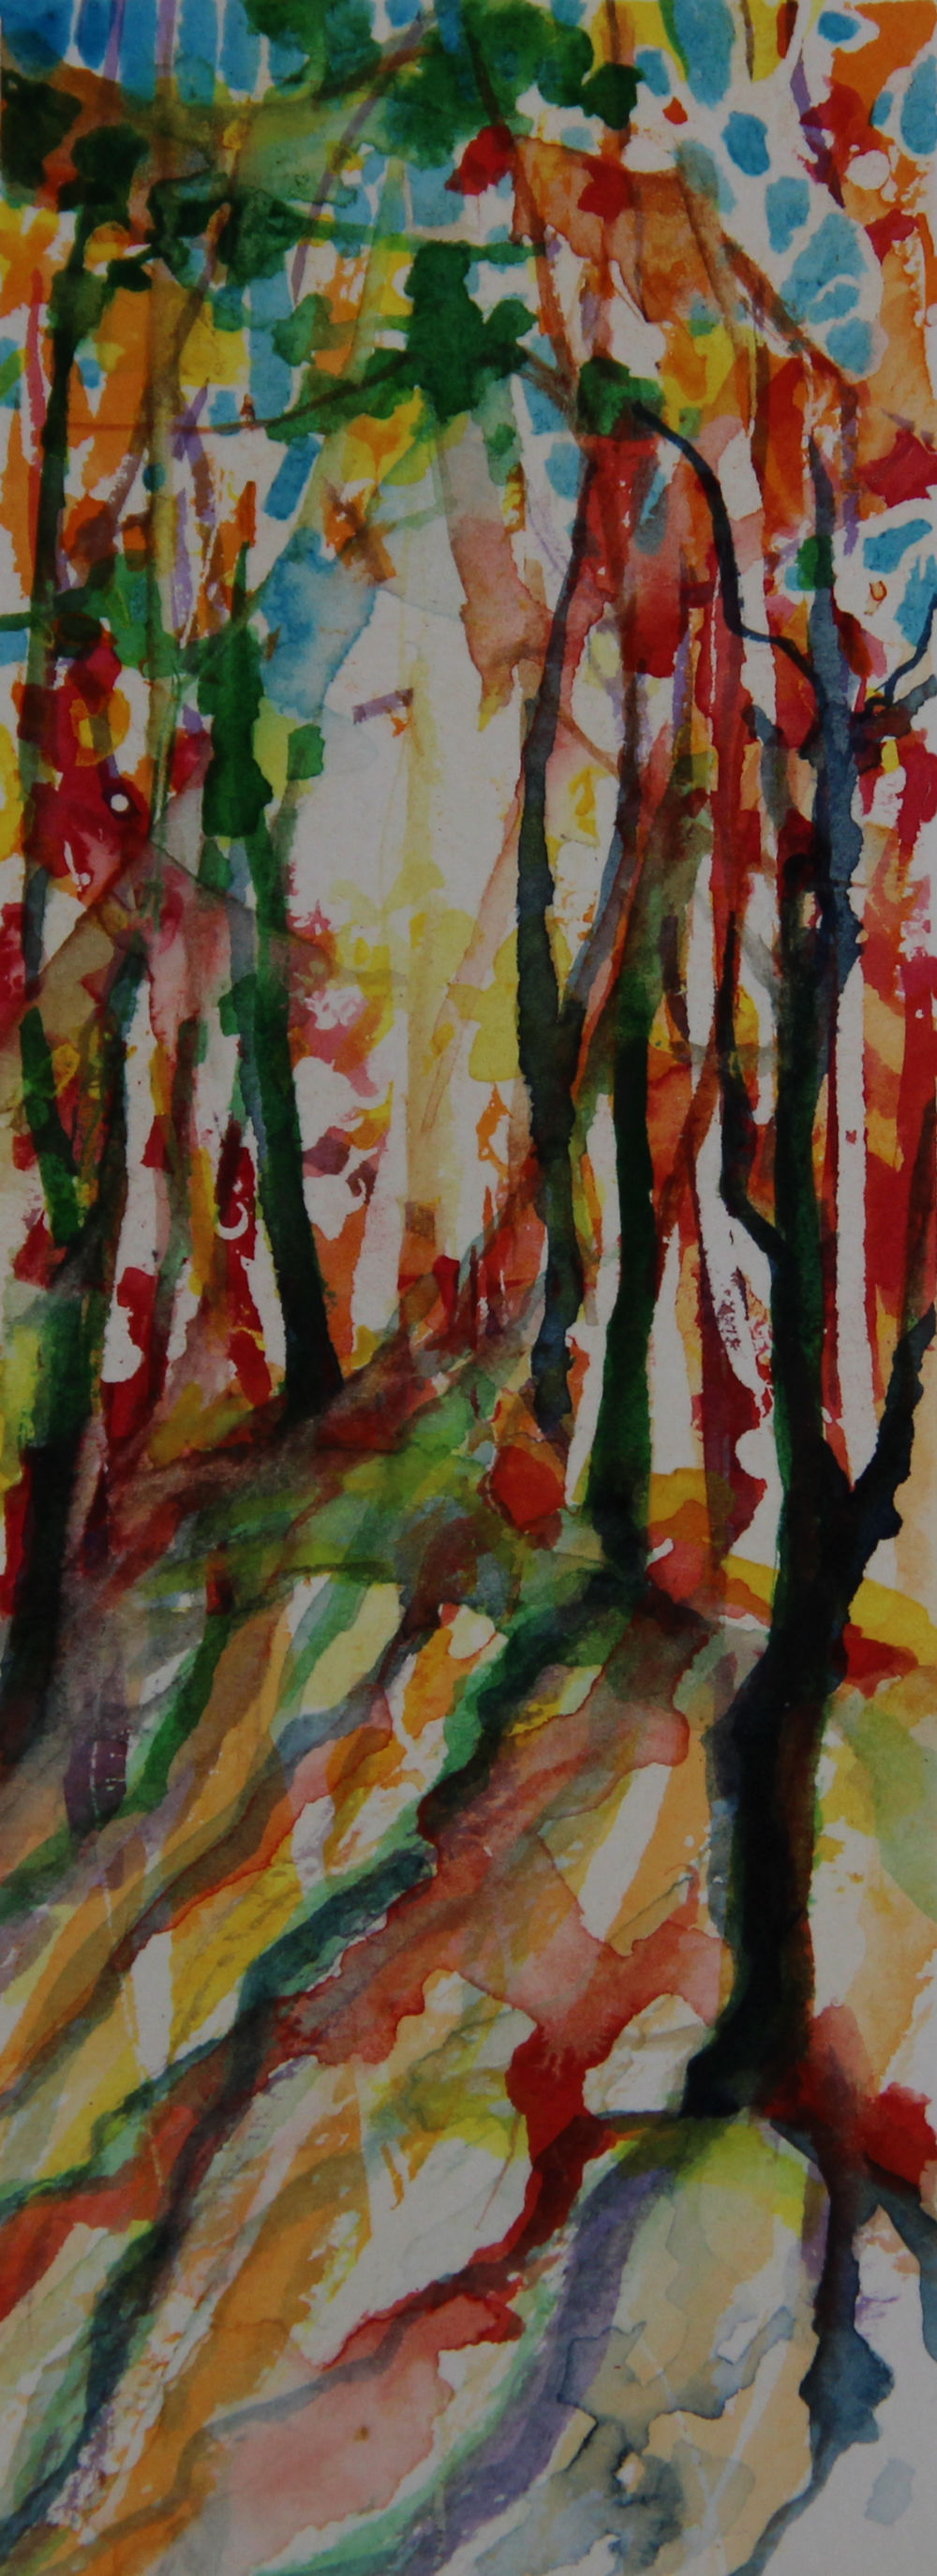 Autumn Forest Scene 03, about 6H x 2W inches watercolors on 140 lb cold pressed